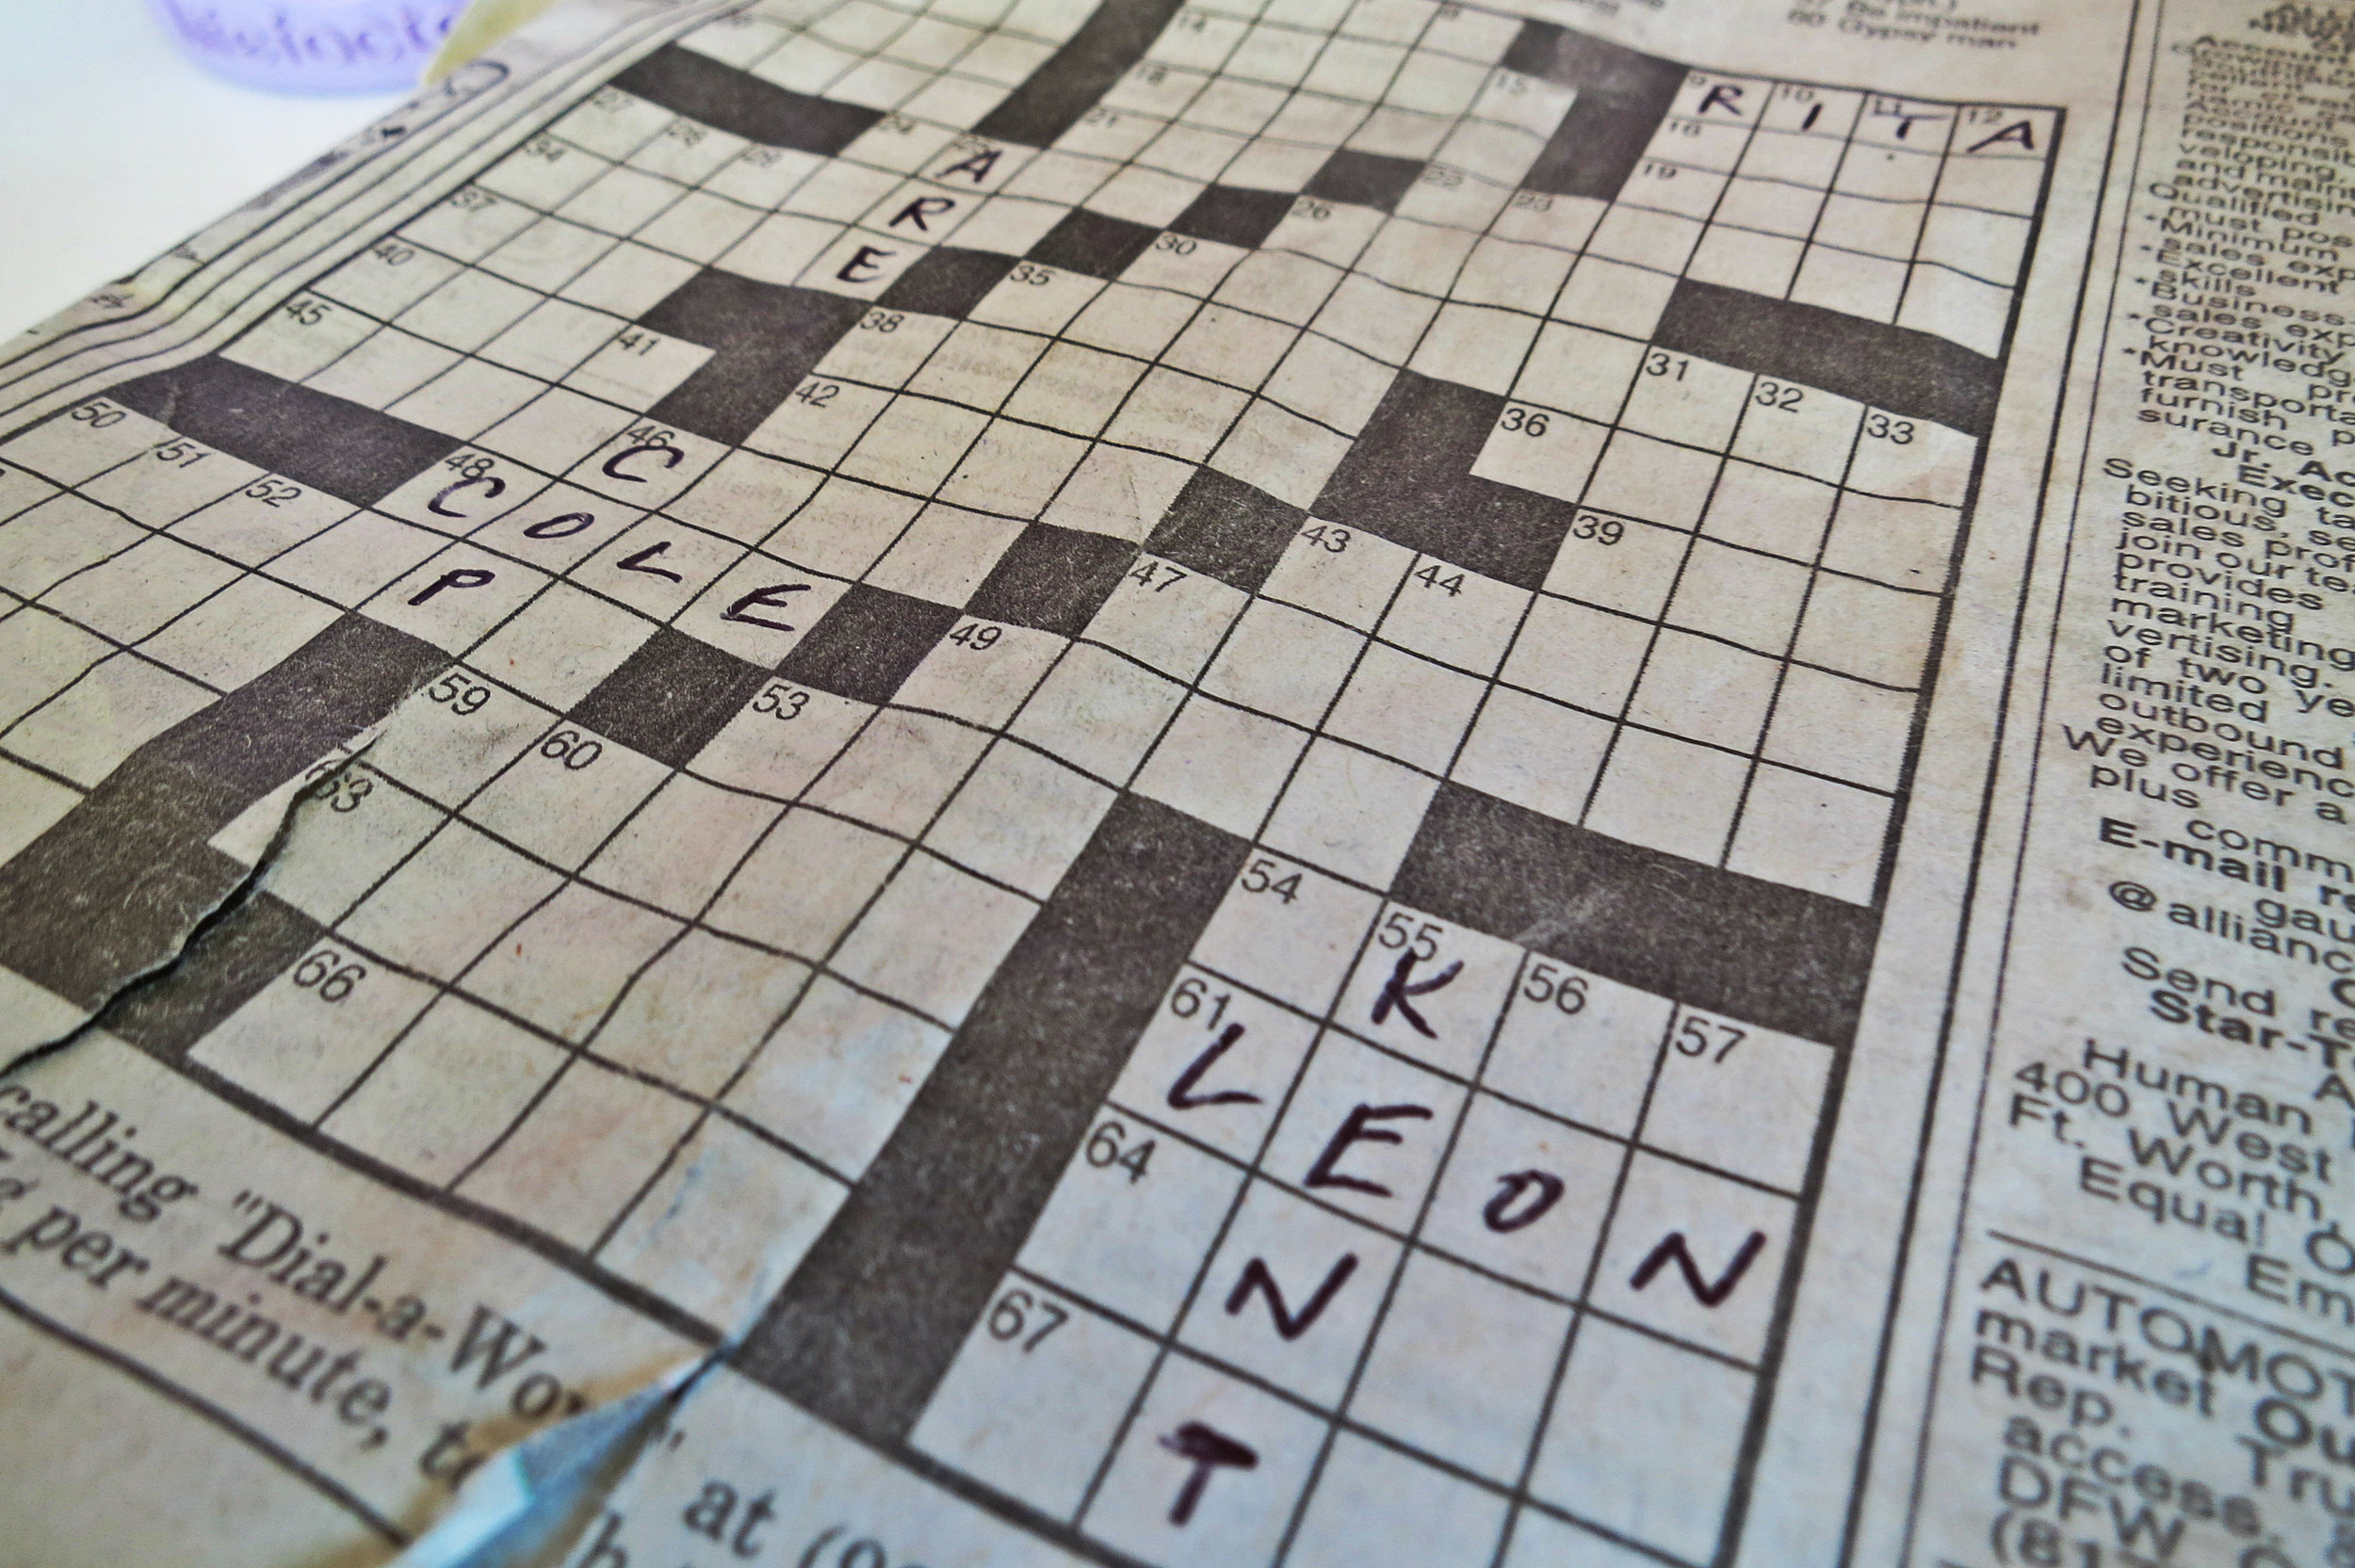 The unfinished crossword puzzle with the neat handwriting went back in her Dad's old bags, as we finished the interview.